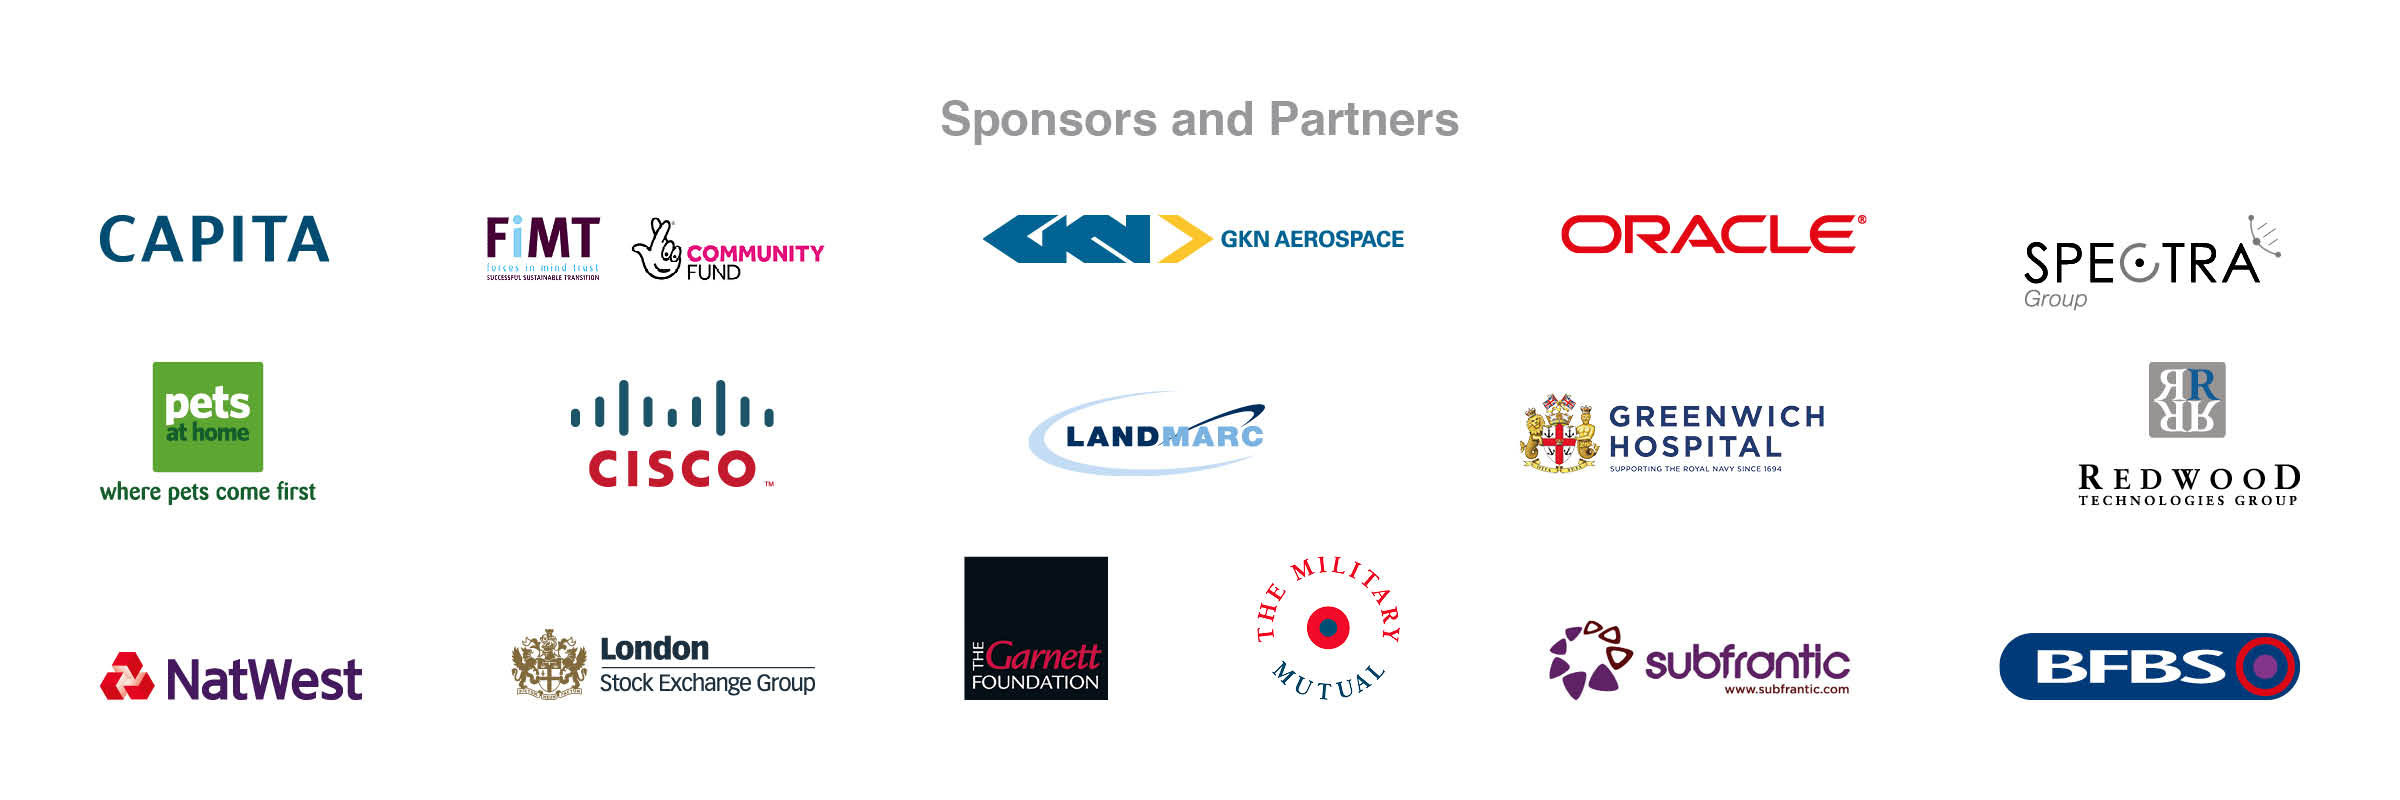 Soldiering On Awards sponsors and supporters